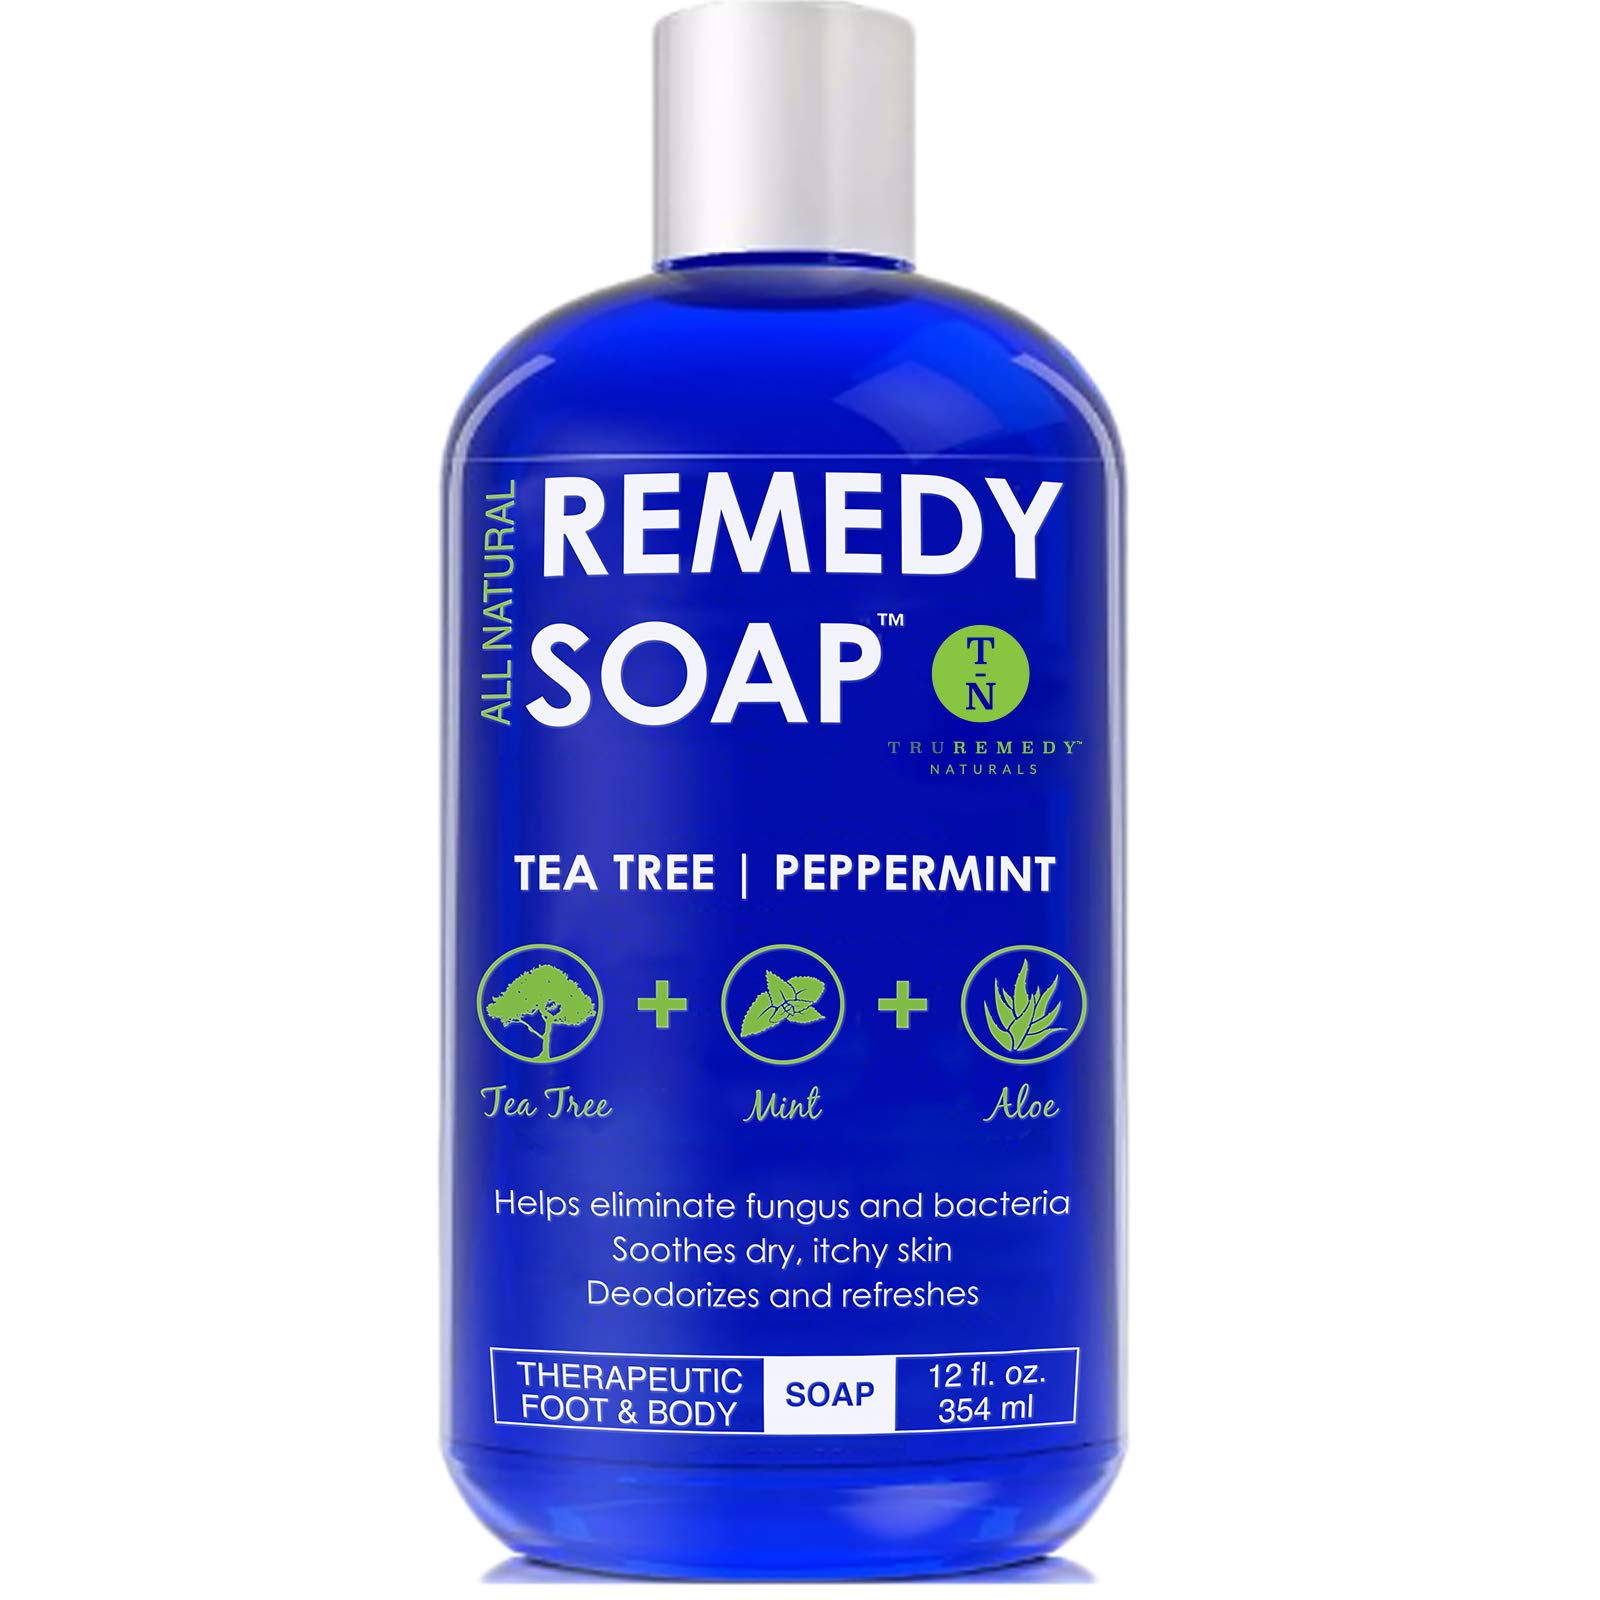 Remedy Antifungal Soap, Helps Wash Away Body Odor, Athlete's Foot, Nail Fungus, Ringworm, Jock Itch, Yeast Infections and Skin Irritations. 100% Natural with Tea Tree Oil, Mint & Aloe 12 oz by Remedy Wash